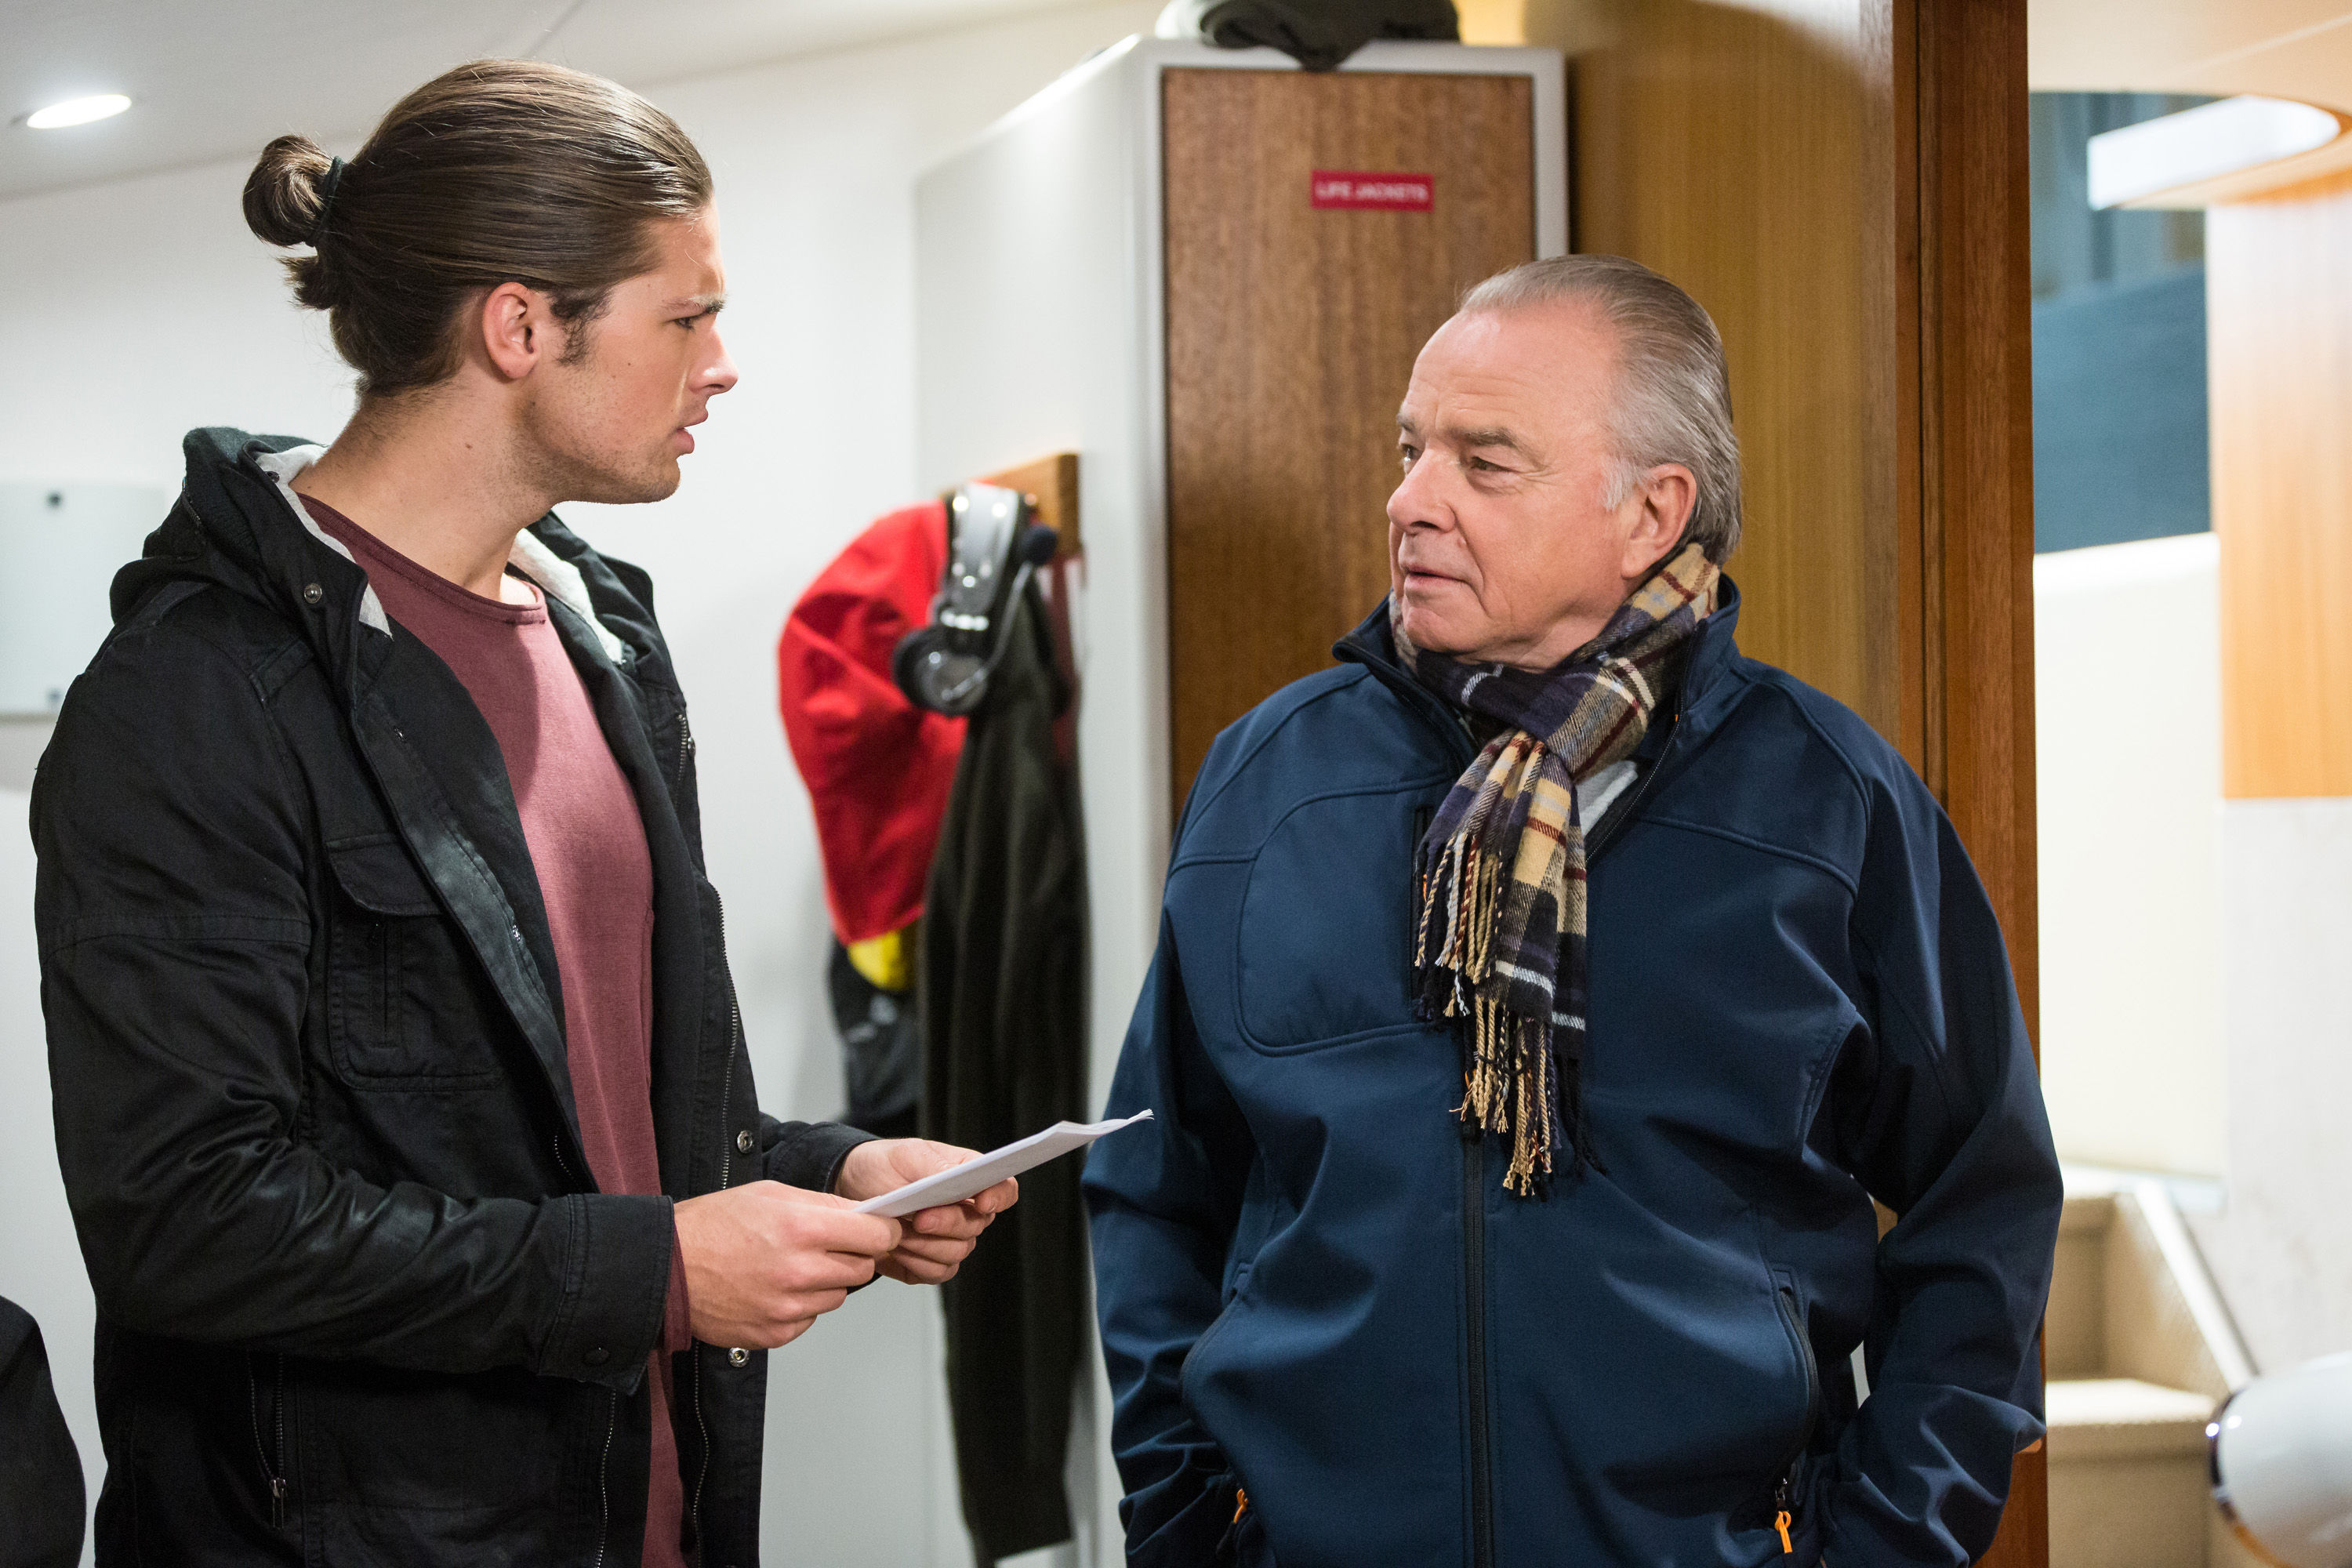 Neighbours Week 44 Ep 7722 - Tyler confronts Hamish over text messages he claims Piper sent to T-Bone. Embargo October 23rd. jh